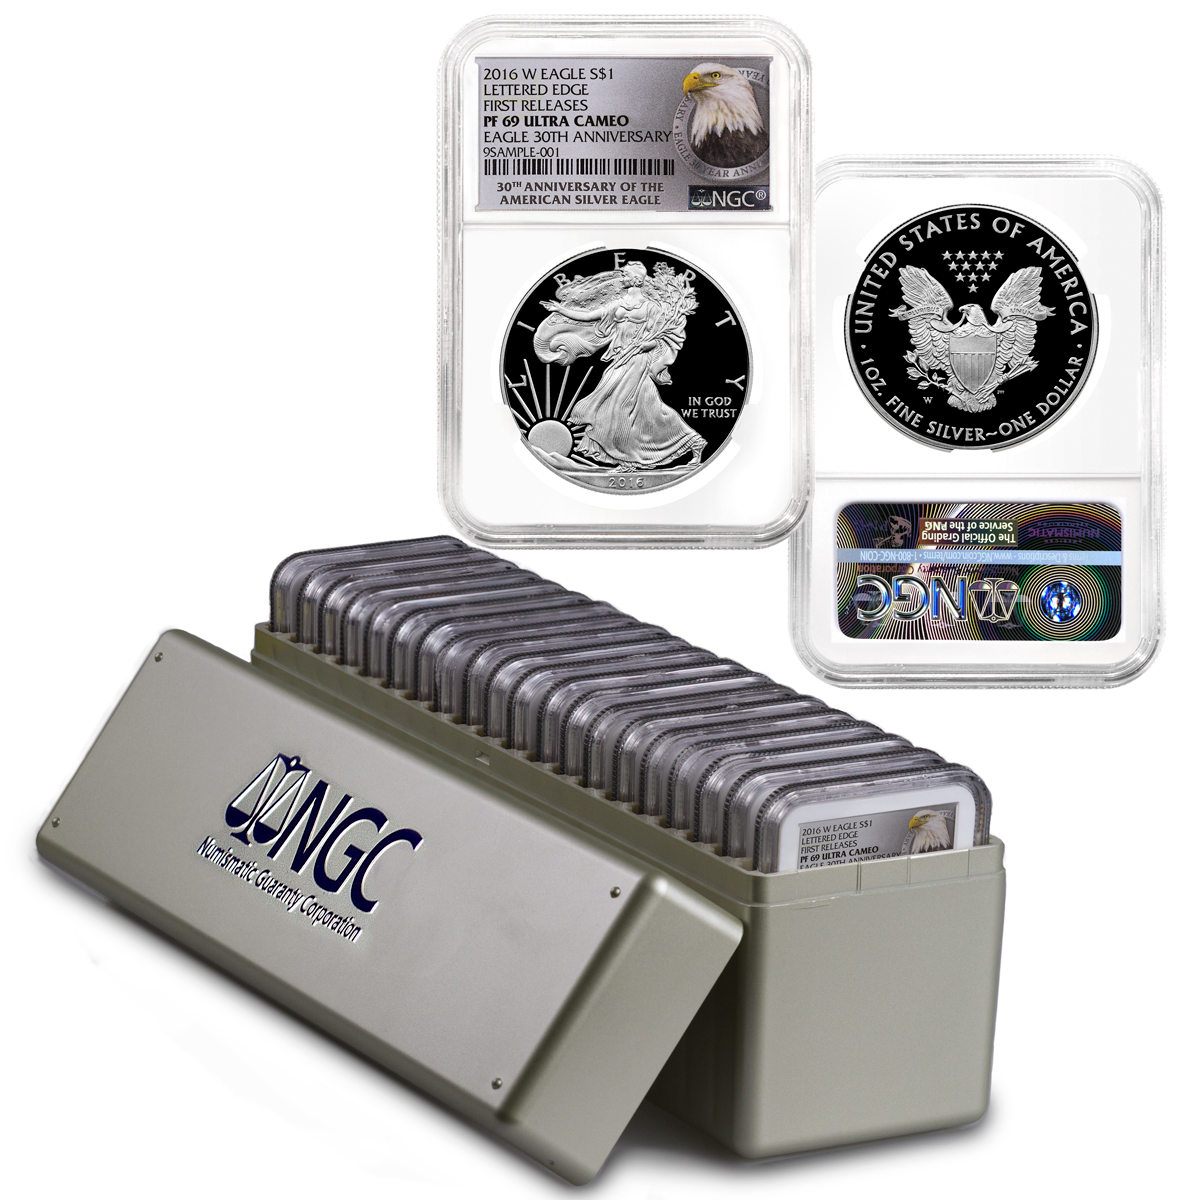 2016-W Proof American Silver Eagle - Box of 20 - NGC PF69 UC First Releases (30th Anniversary Label)